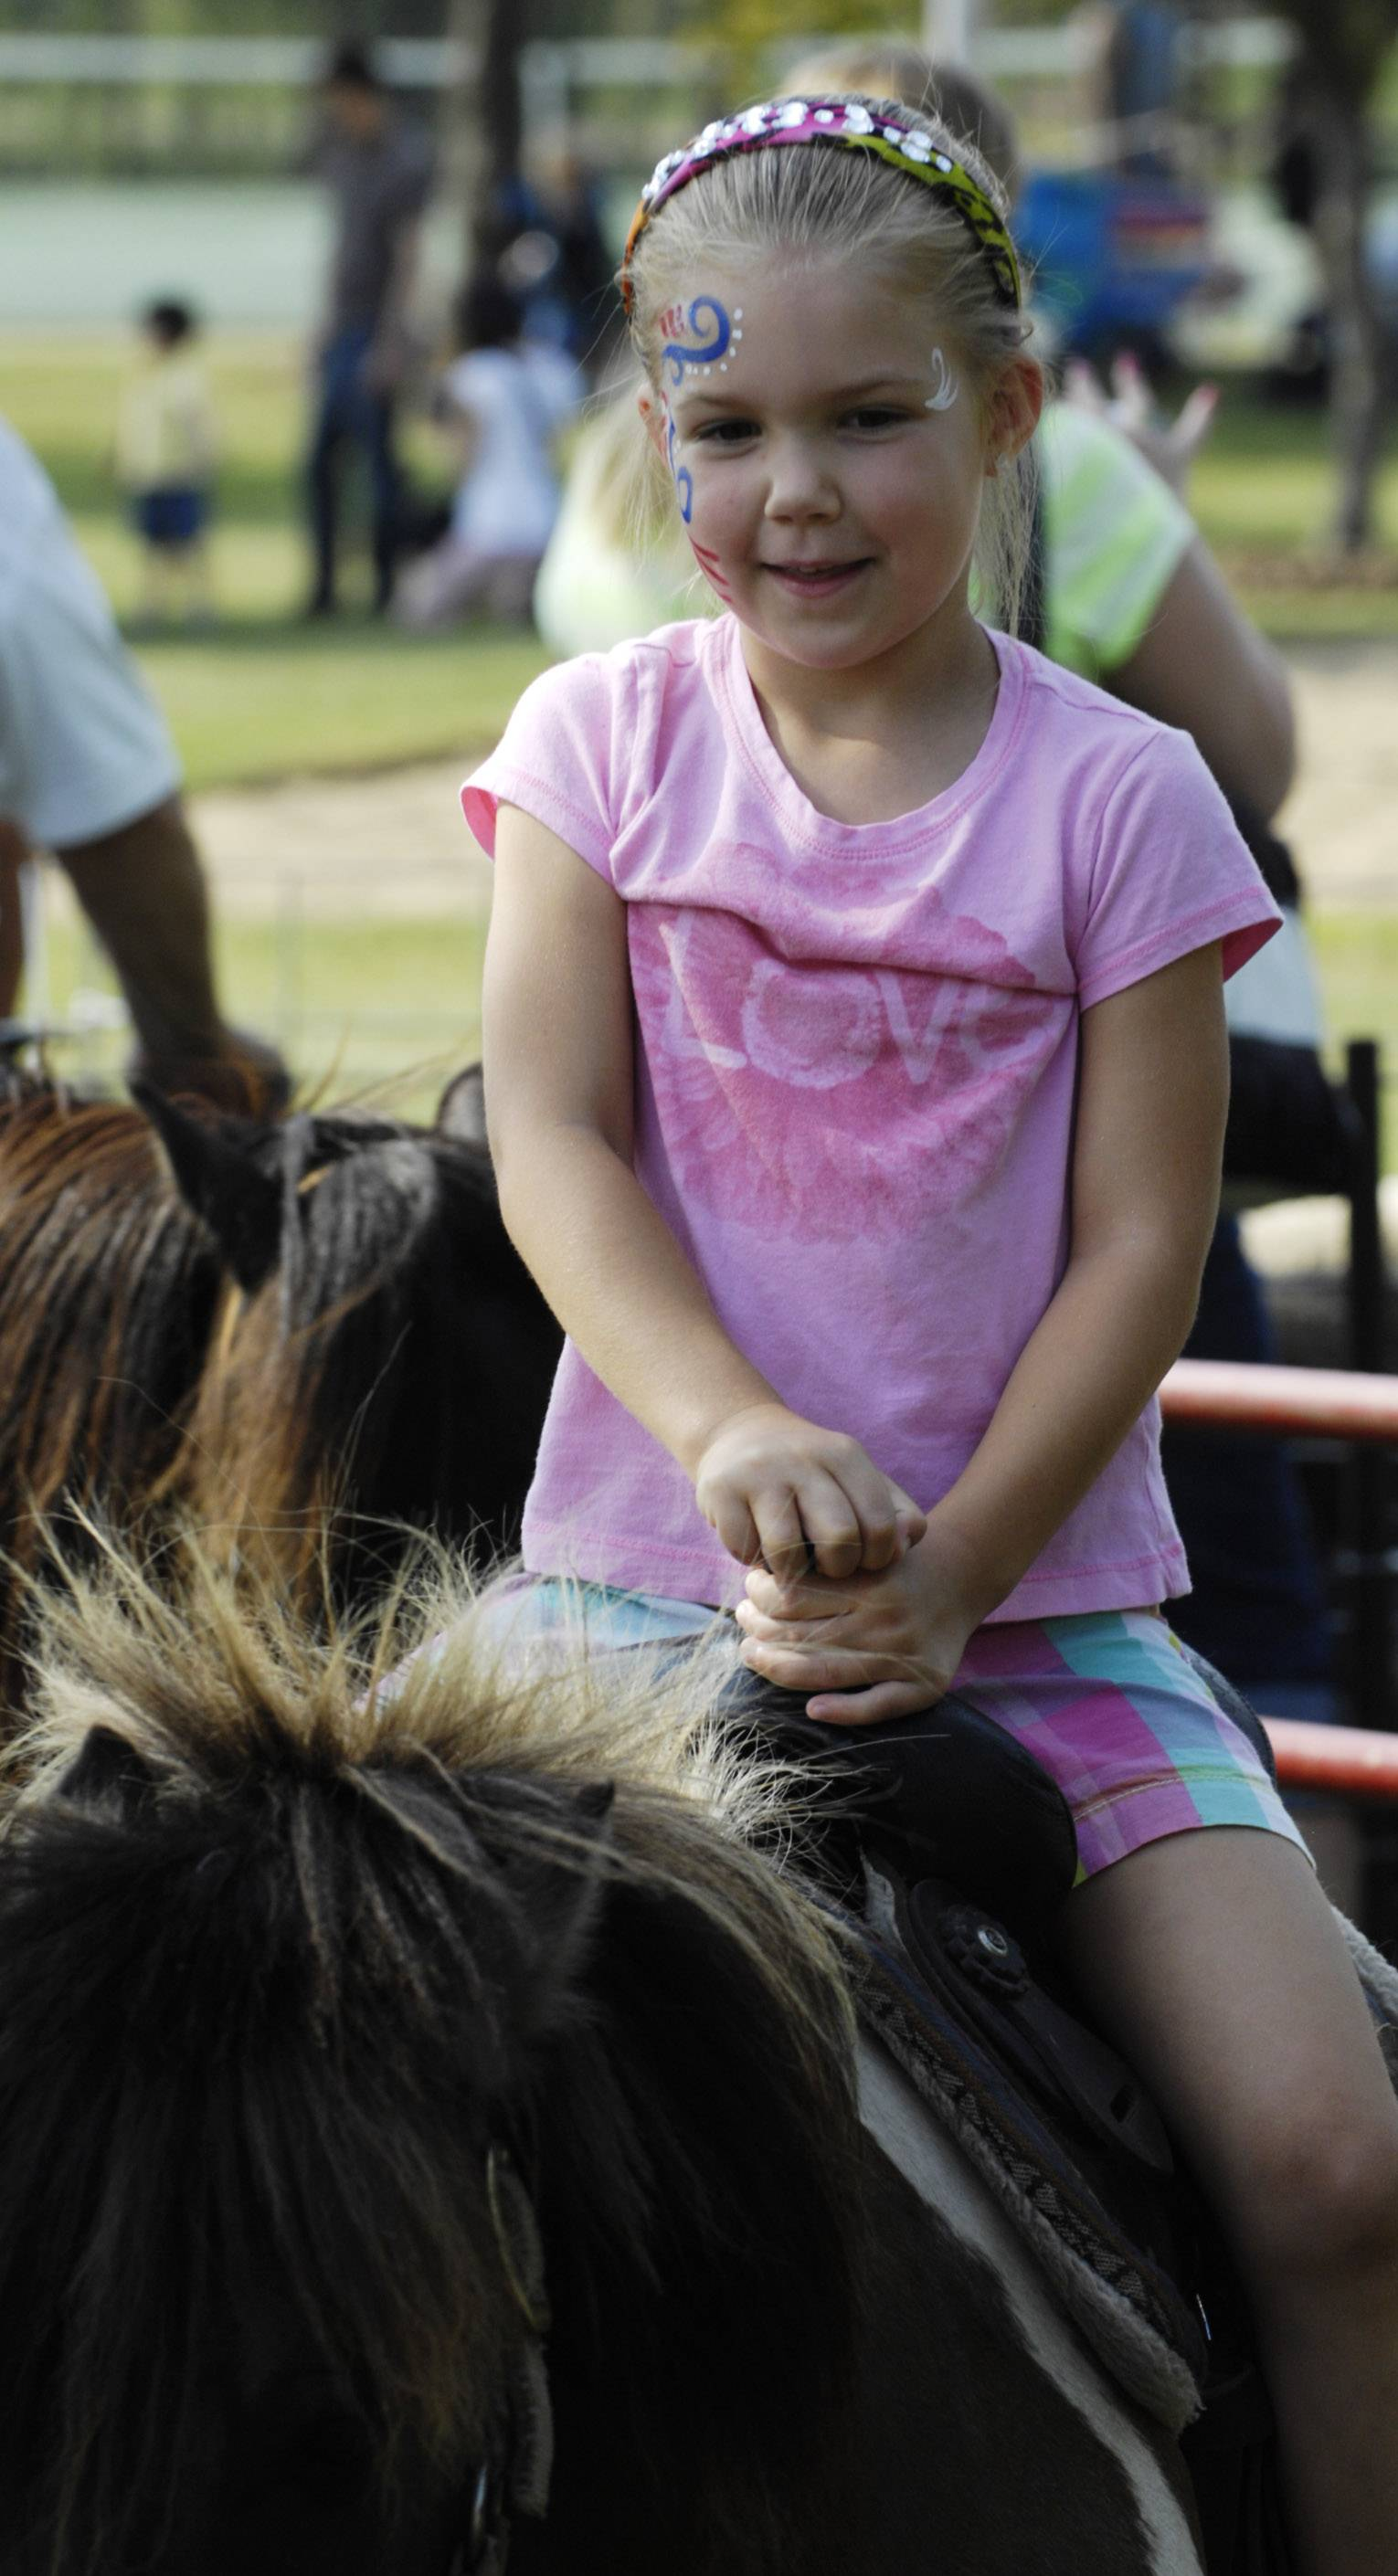 Shelby Walsh, 6, of Gilberts, whose parents live in Hoffman Estates, rides a pony Saturday during the Party in the Park at Highpoint Park in Hoffman Estates.